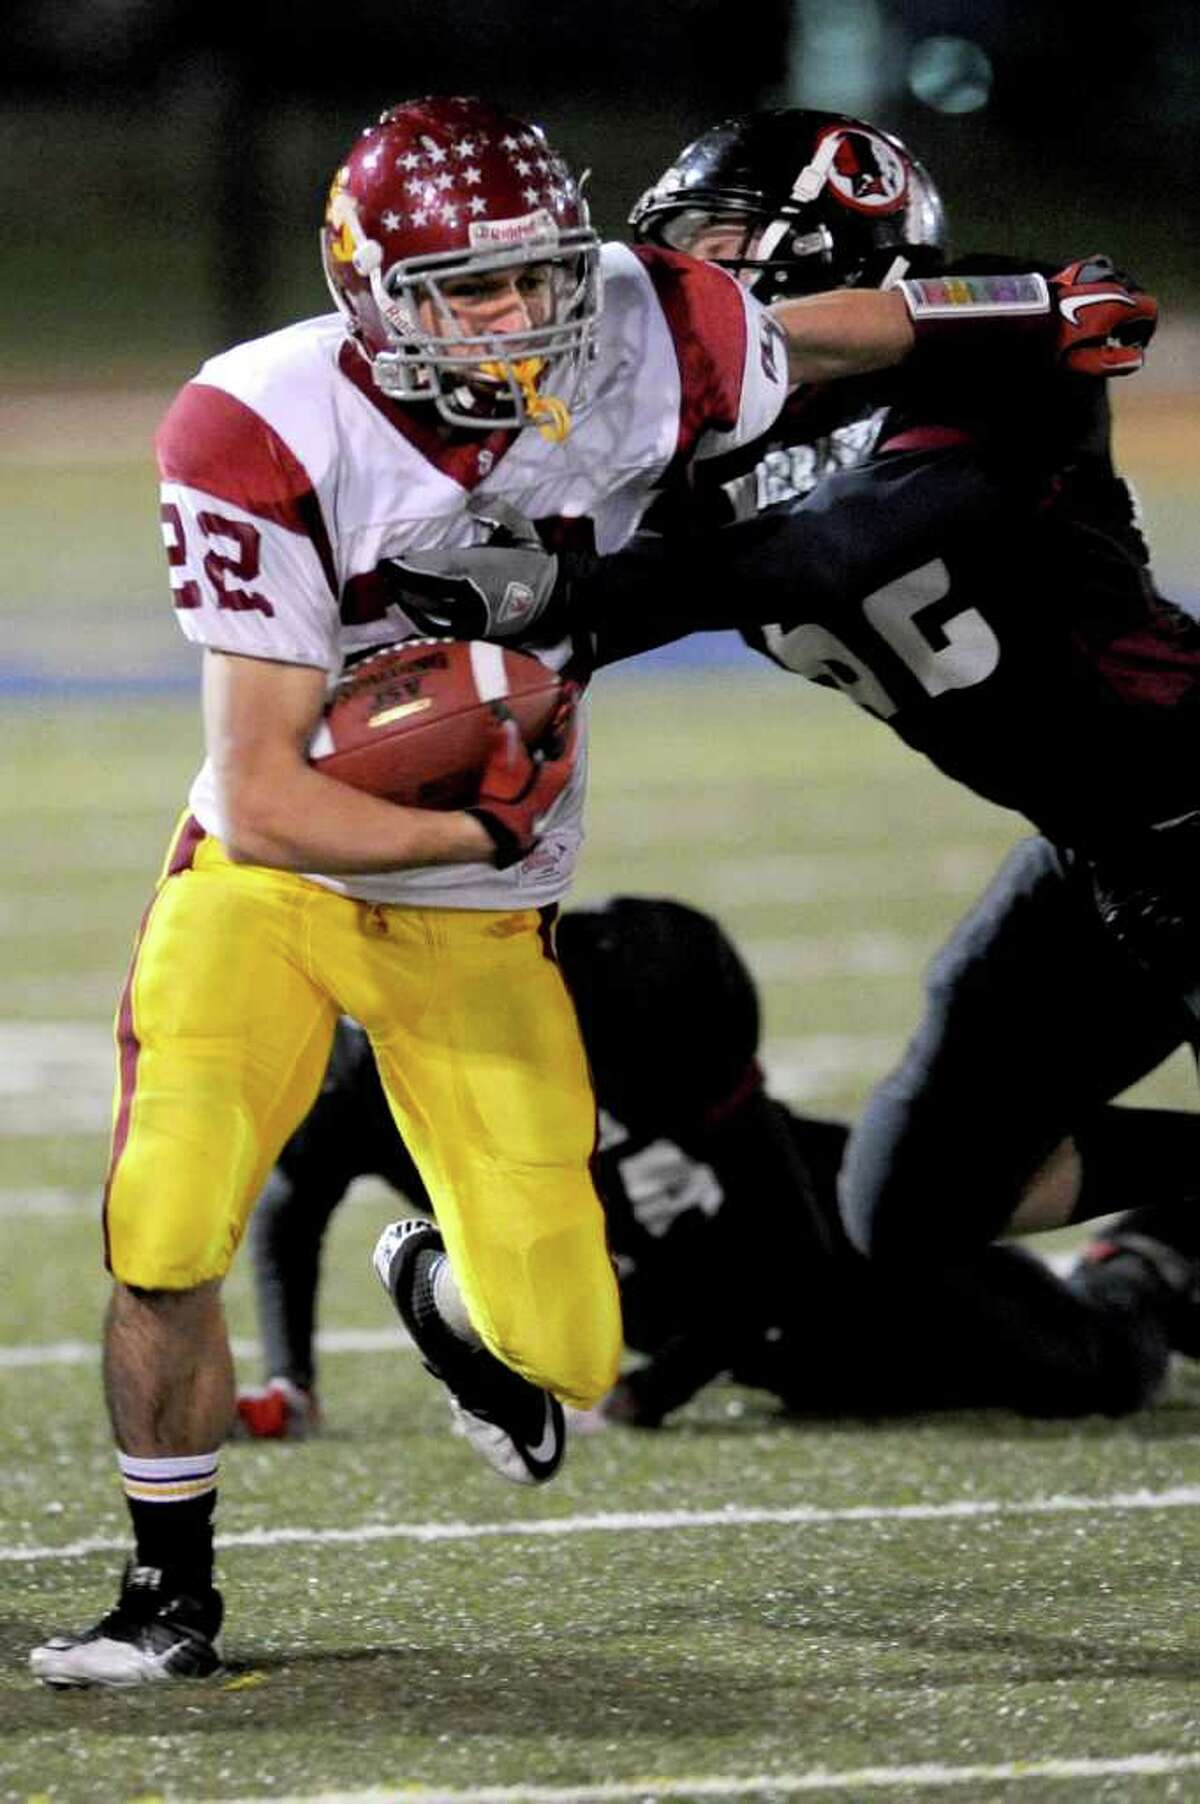 St. Joseph's Jerry Kramer carries the ball during Saturday's Class S semifinal game in Waterbury between St. Joseph and Valley Regional High Schools on December 4, 2010.